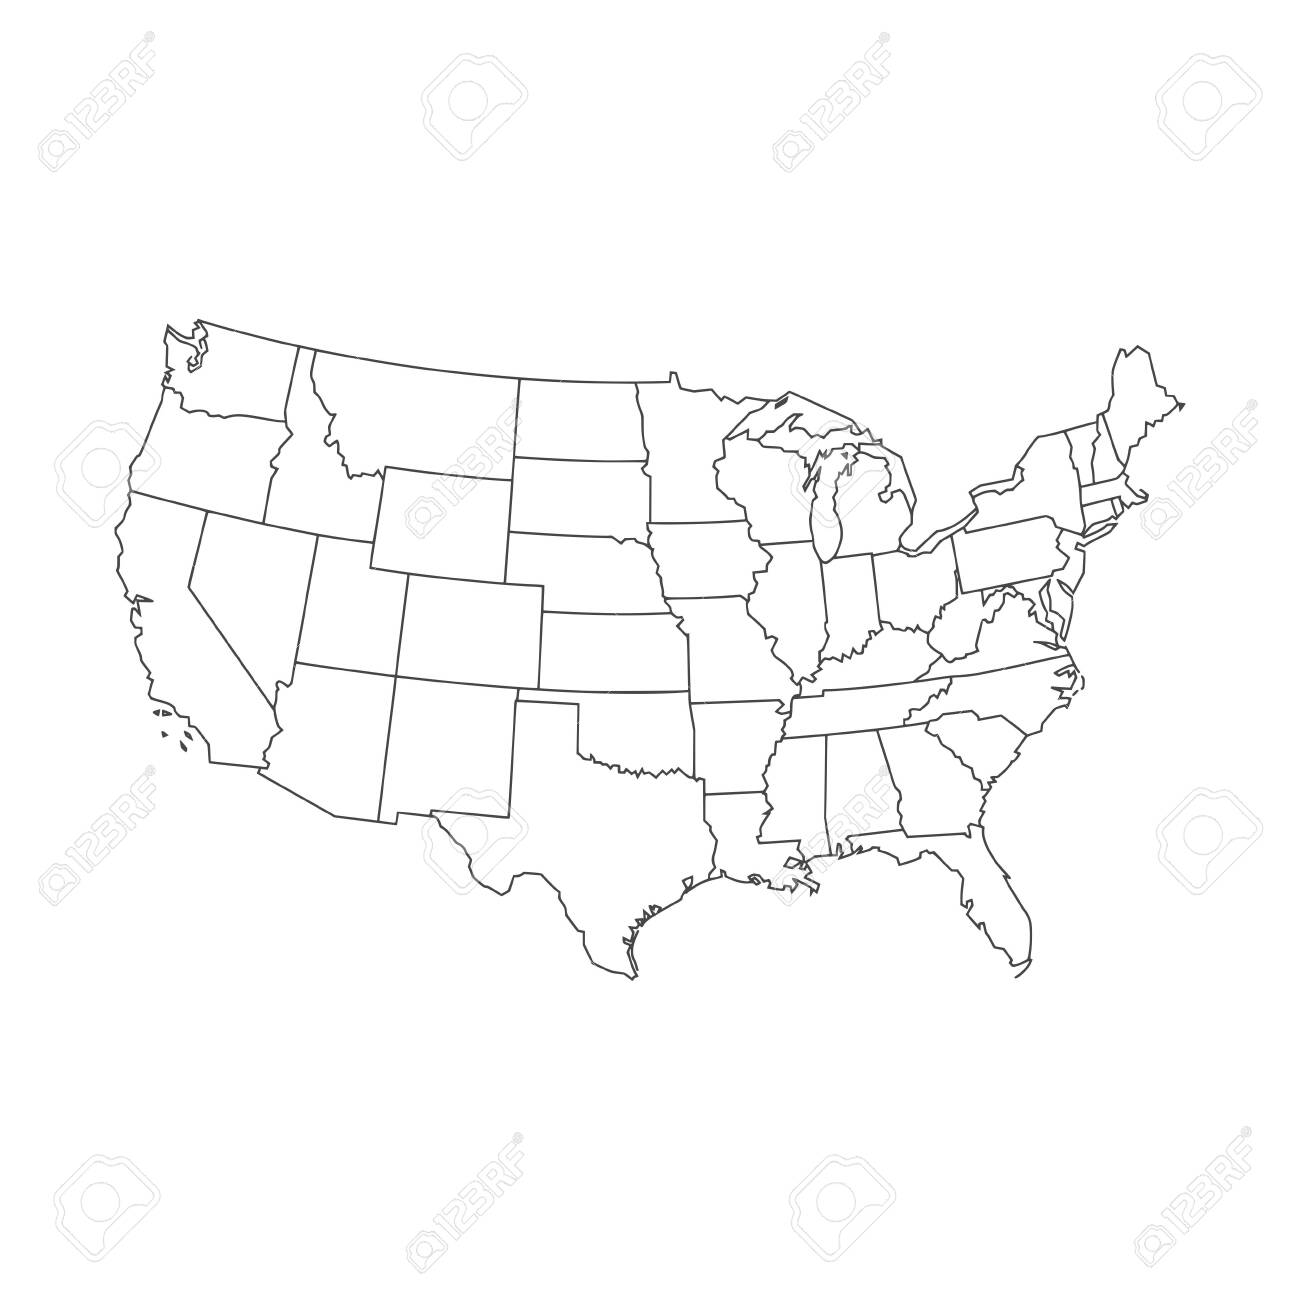 United States of American Map - 138284018